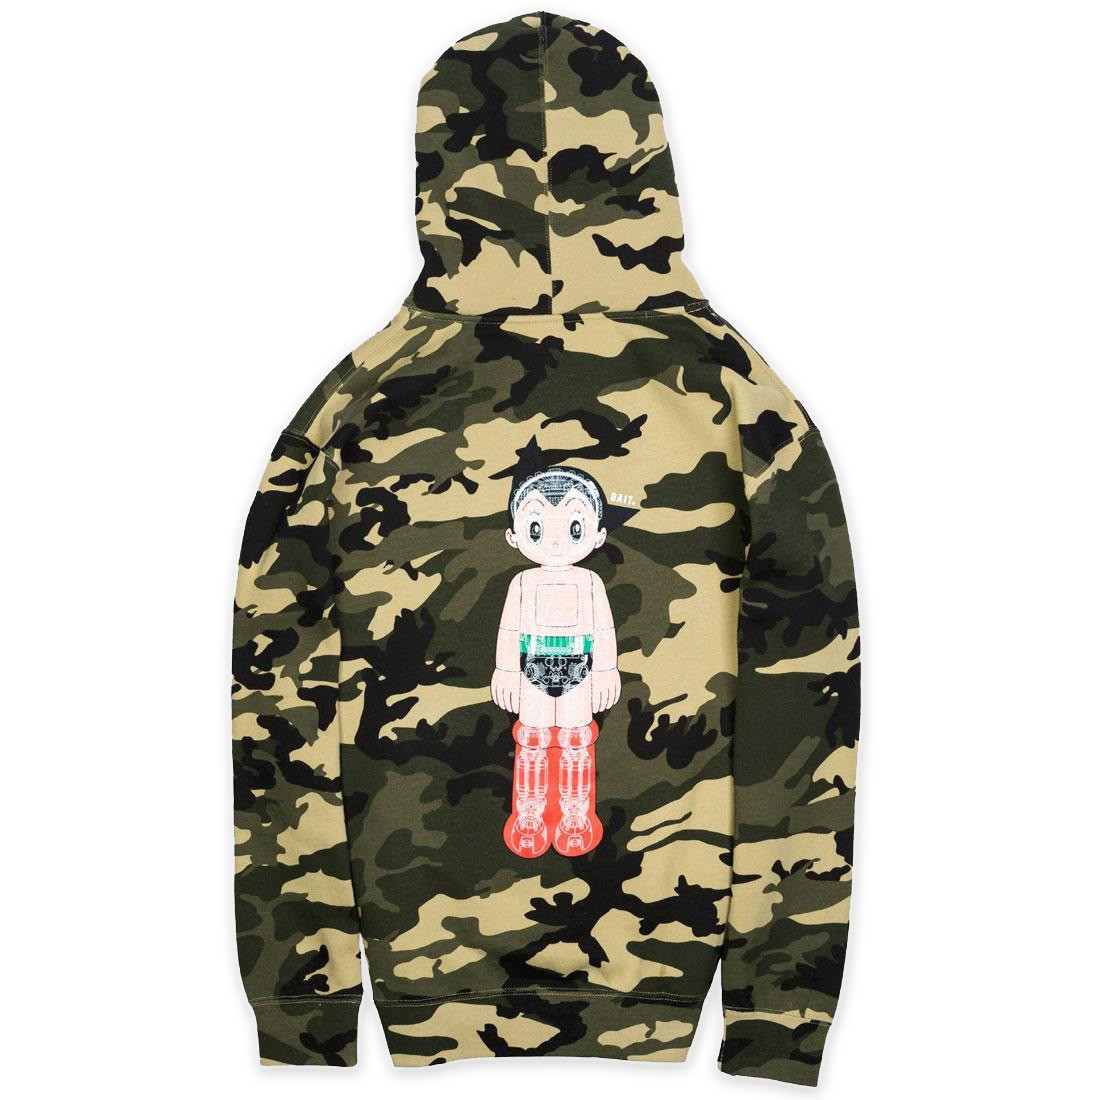 BAIT x Astro Boy Men Mechanics Hoody (camo / army)